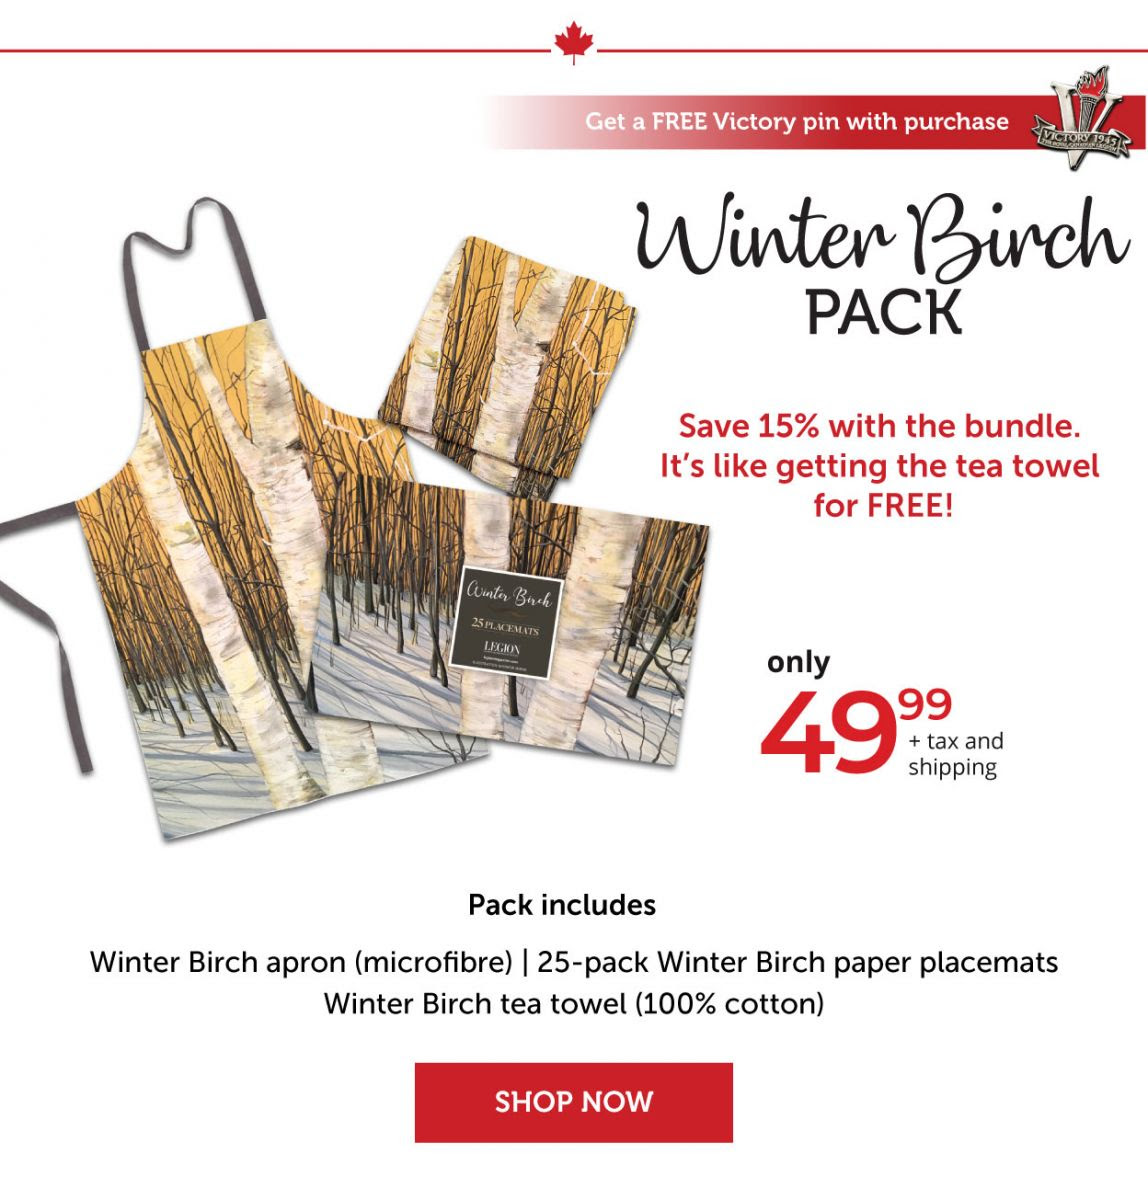 Winter Birch Pack